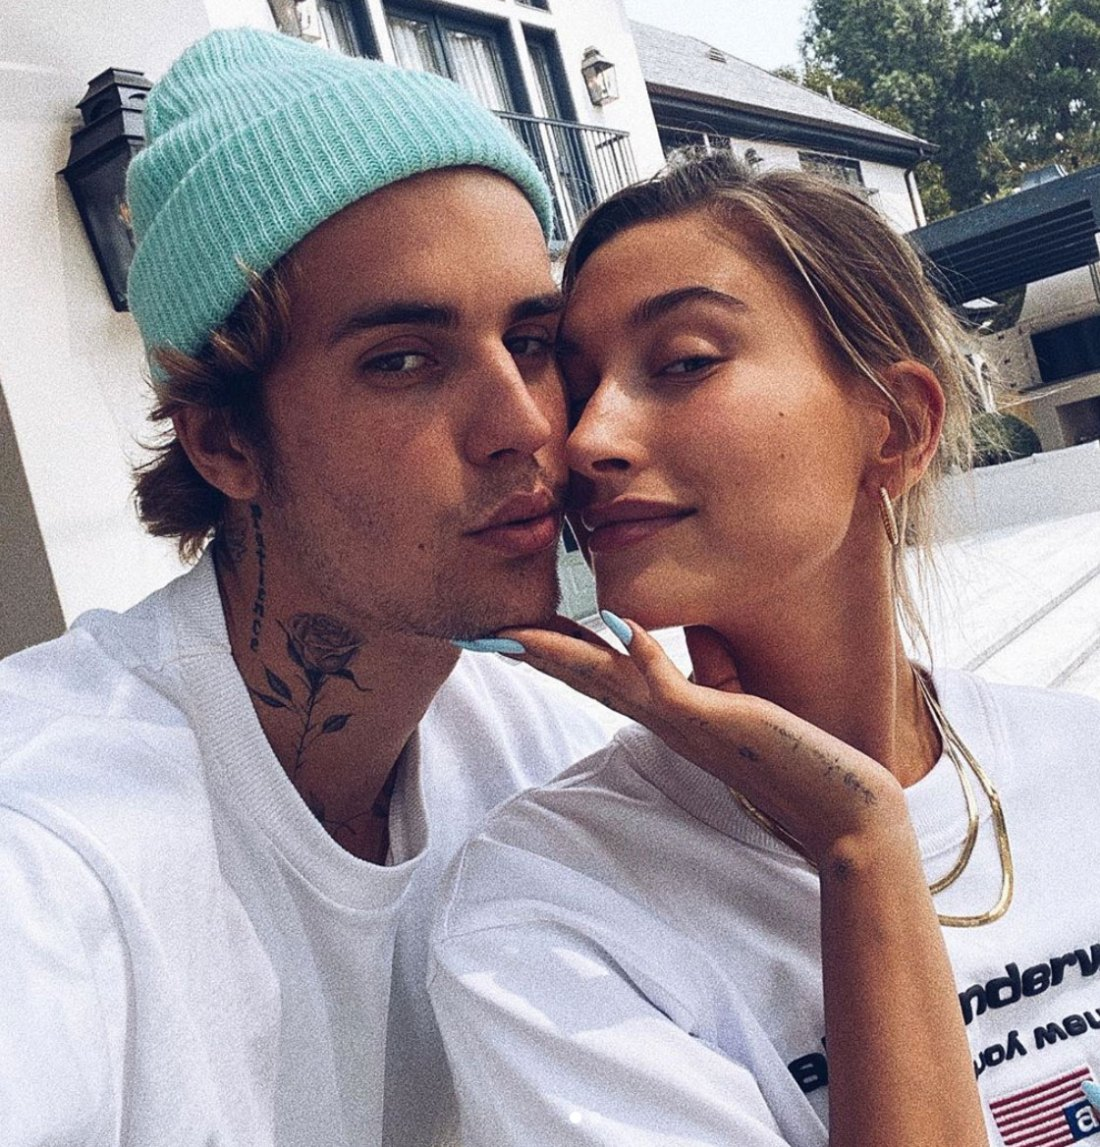 Justin Bieber Pens Romantic Message To Hailey On 24th Birthday